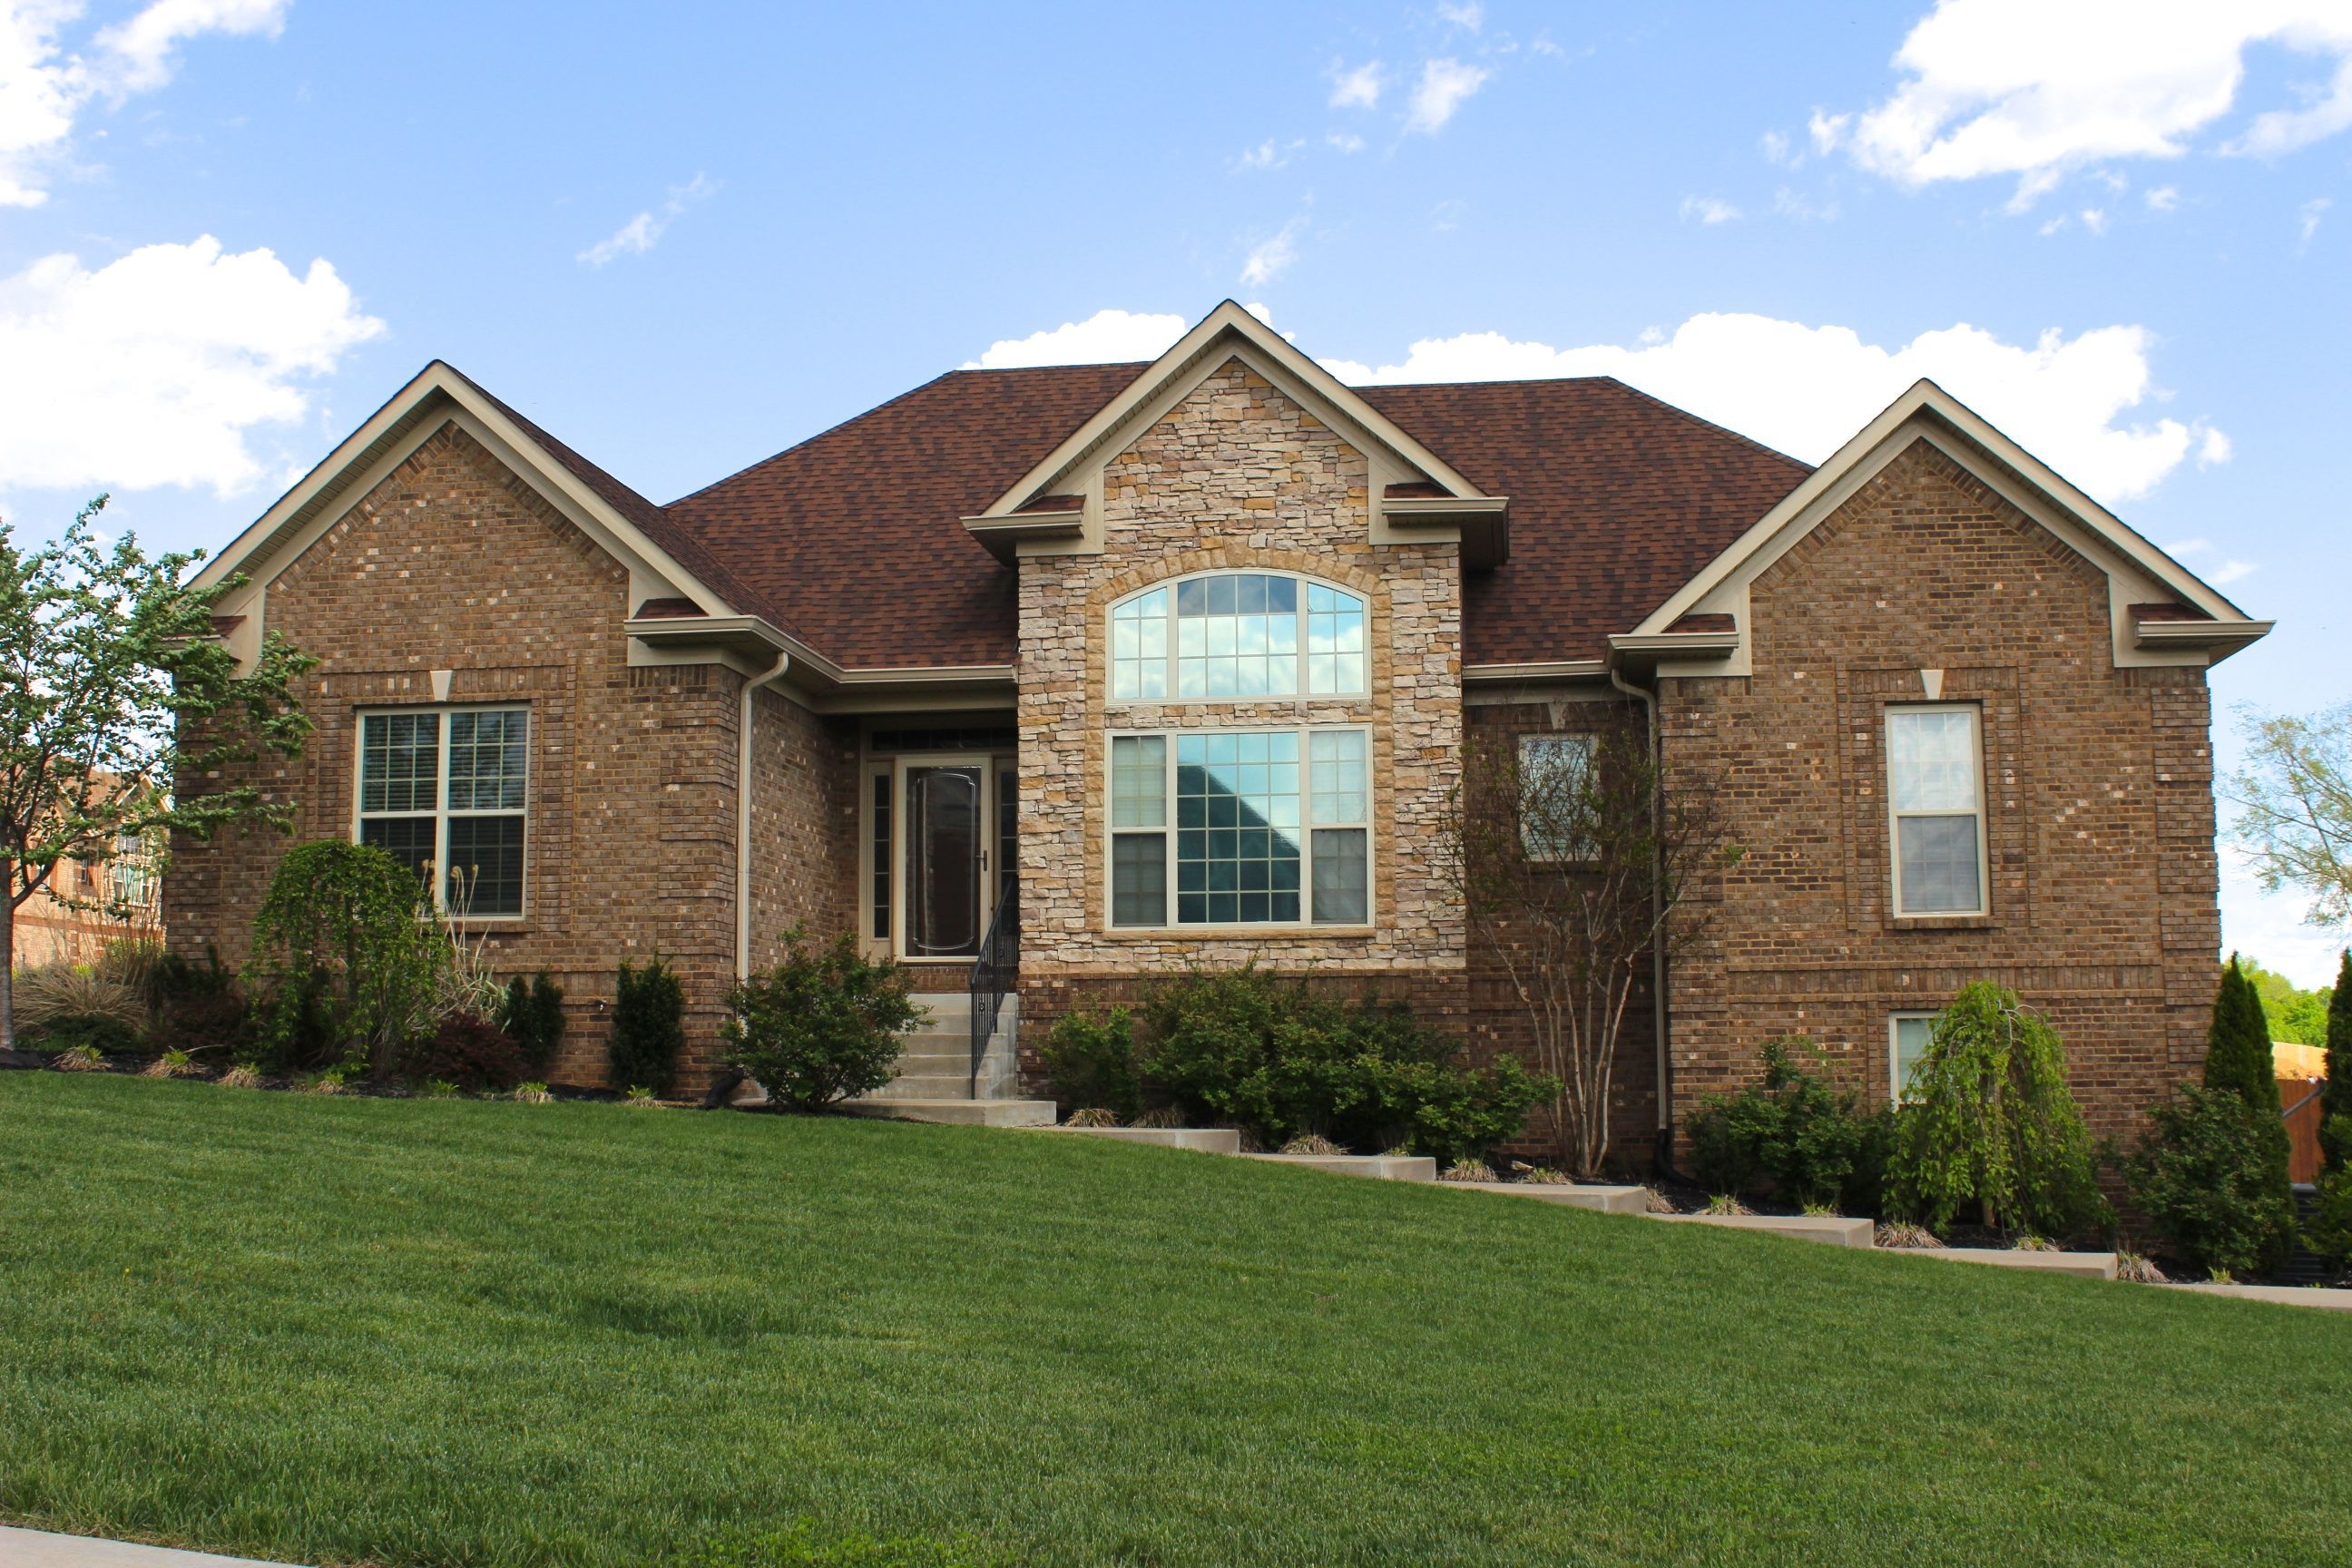 New homes for sale with basements in clarksville tn - Modular homes with basement ...